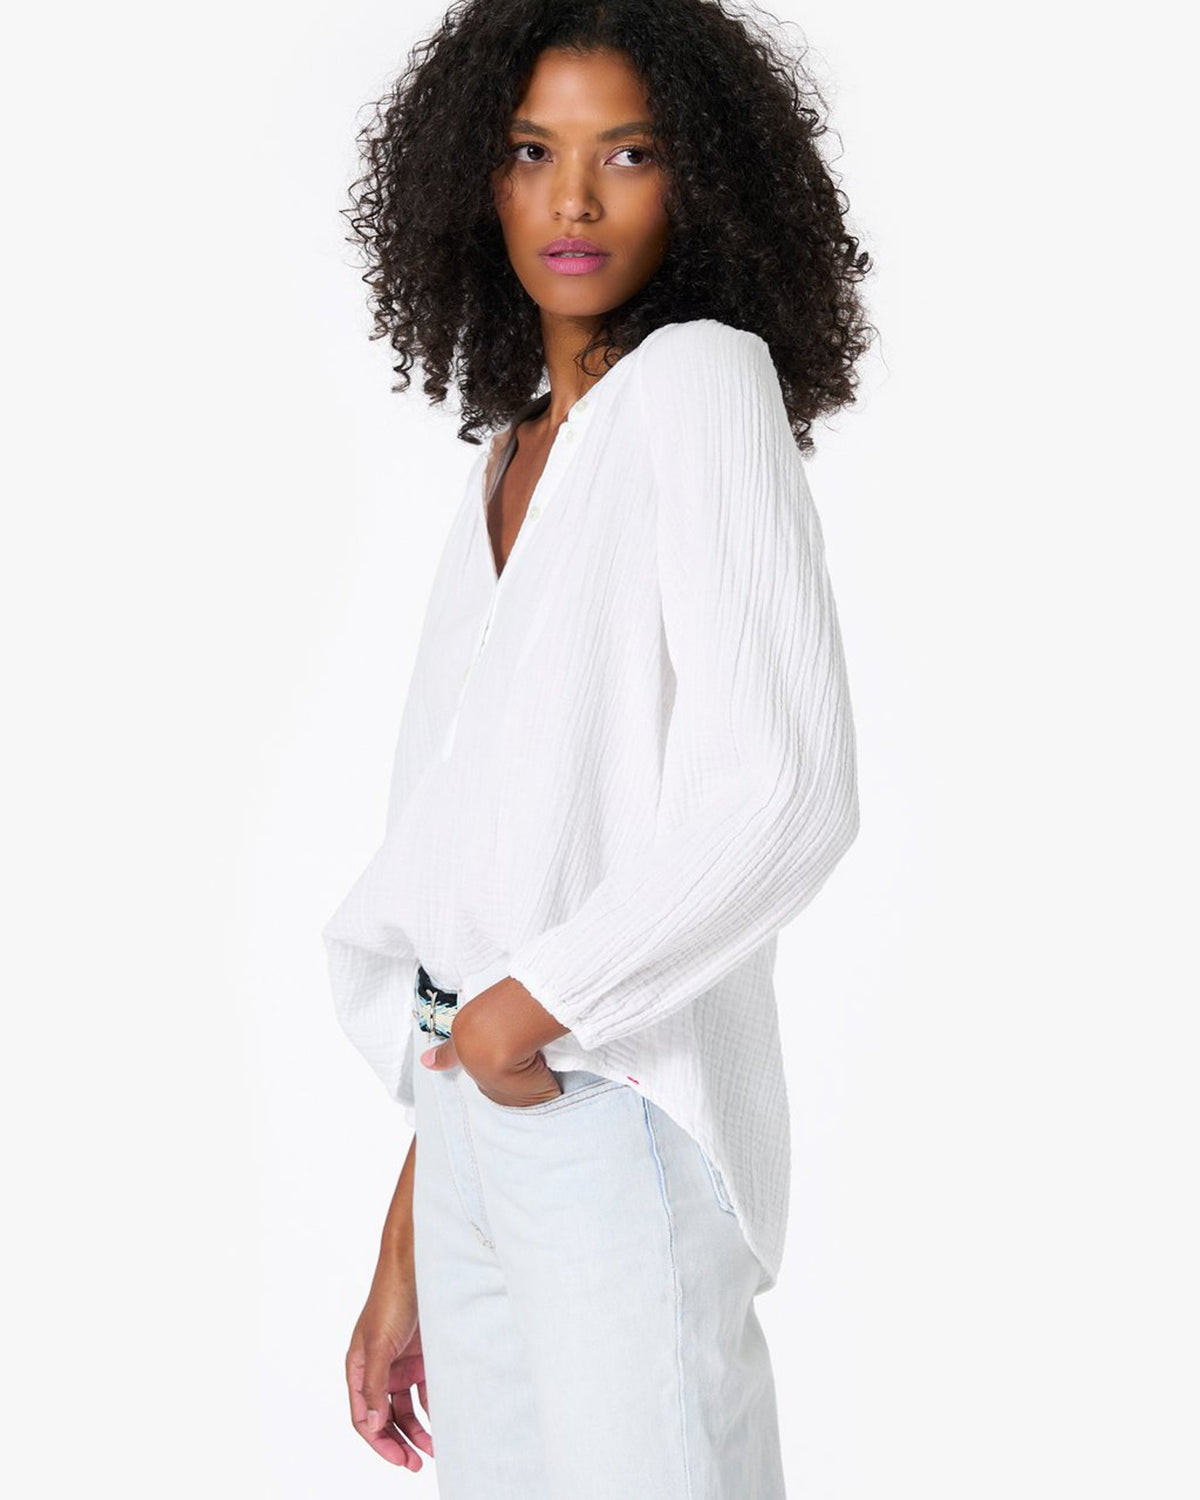 XiRENA Clothing Aerin Top in White